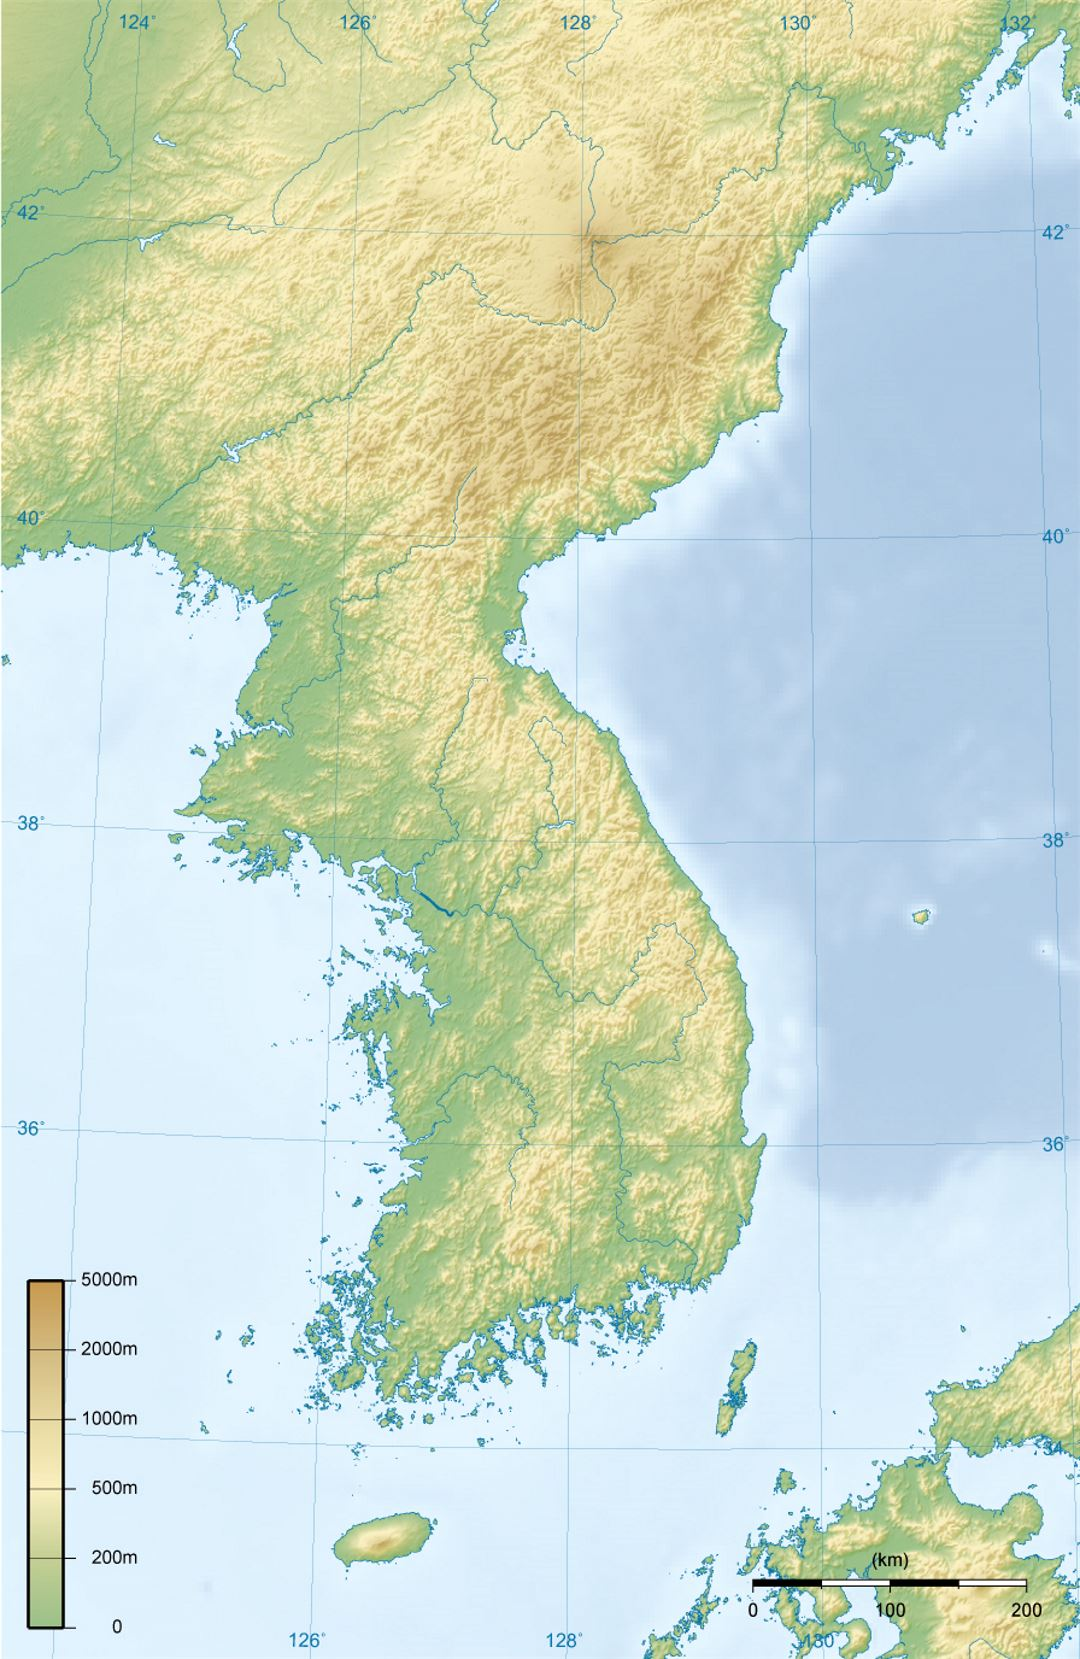 Topographic Map Asia.Detailed Topographic Map Of Korean Peninsula North Korea Asia